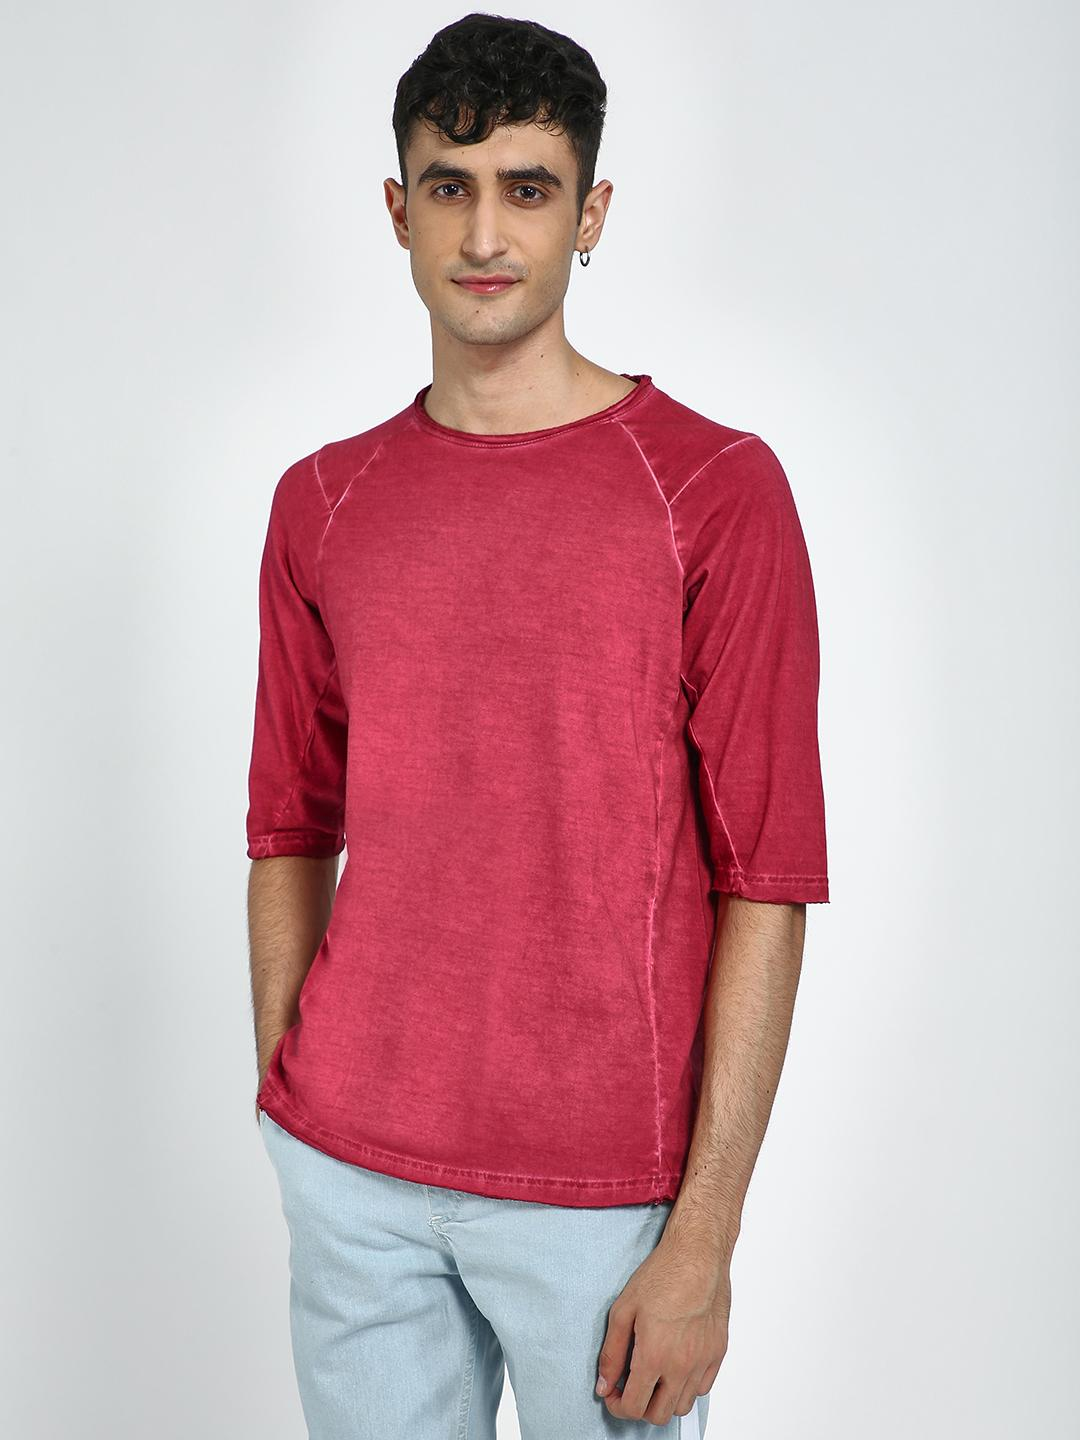 Blue Saint Maroon Washed Raw Hem Long Sleeve T-Shirt 1